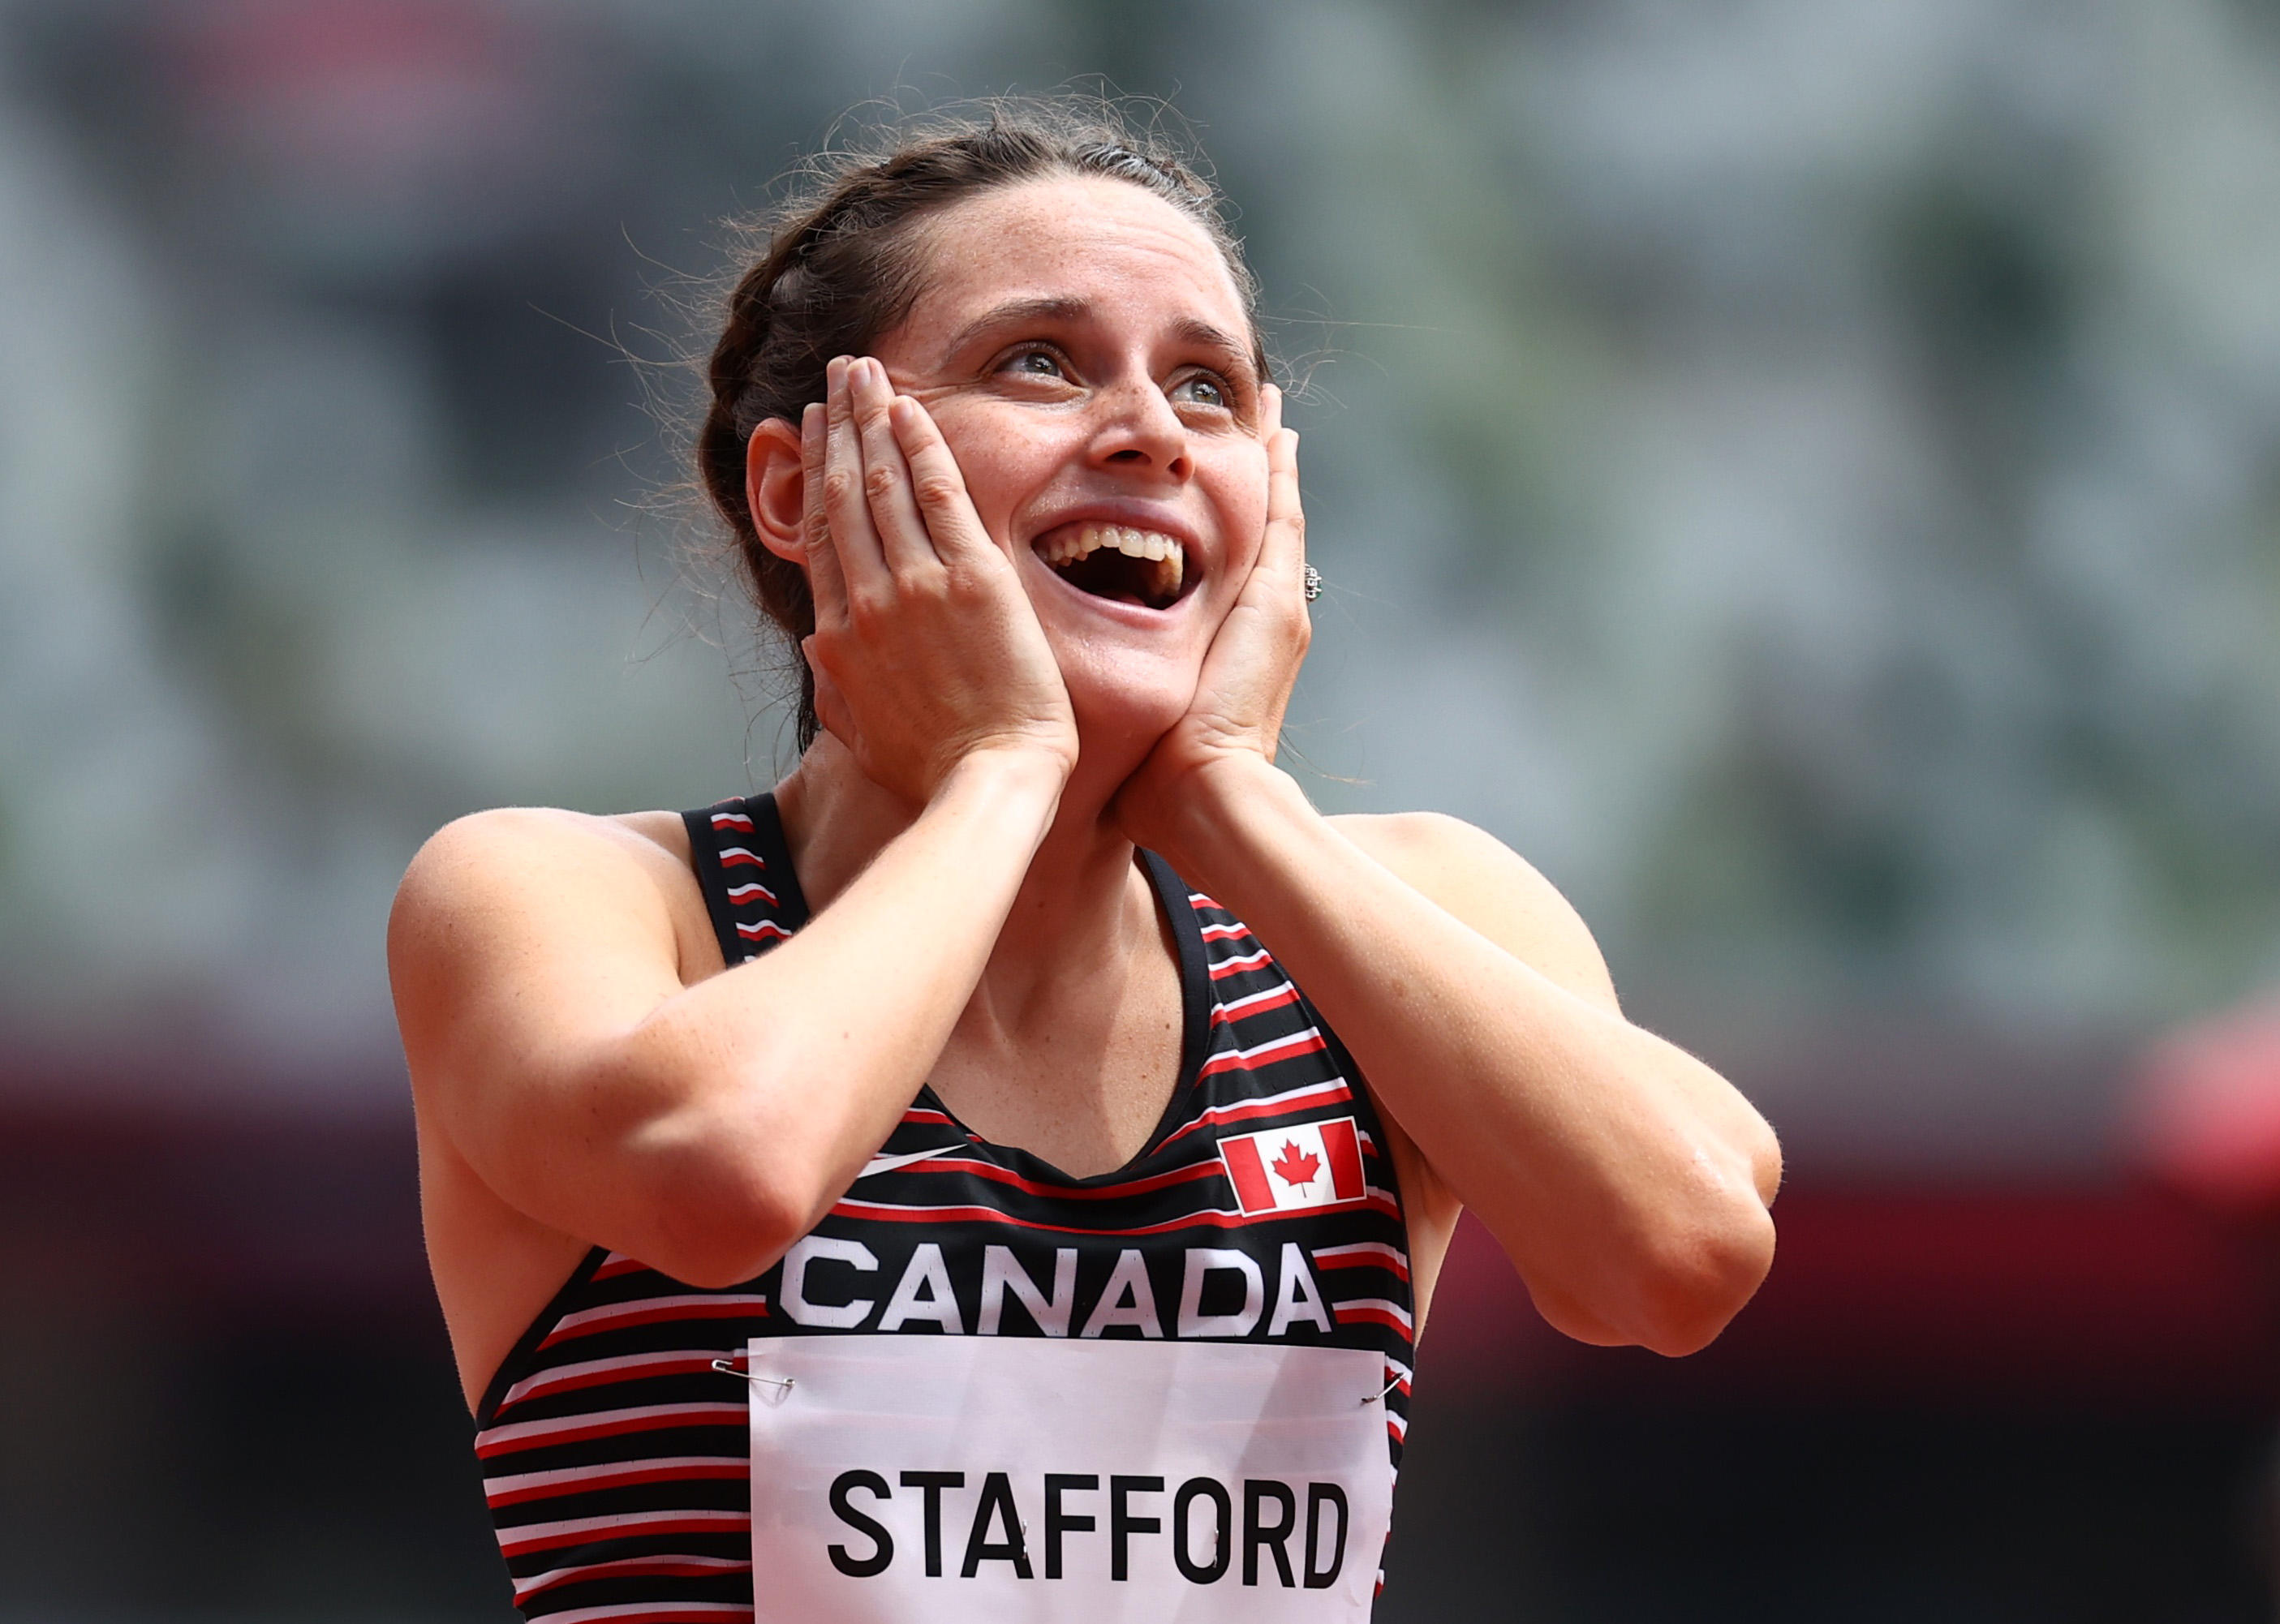 Tokyo 2020 Olympics - Athletics - Women's 1500m - Round 1- OLS - Olympic Stadium, Tokyo, Japan - August 2, 2021. Lucia Stafford of Canada reacts after competing REUTERS/Lucy Nicholson - SP1EH8203MV8P